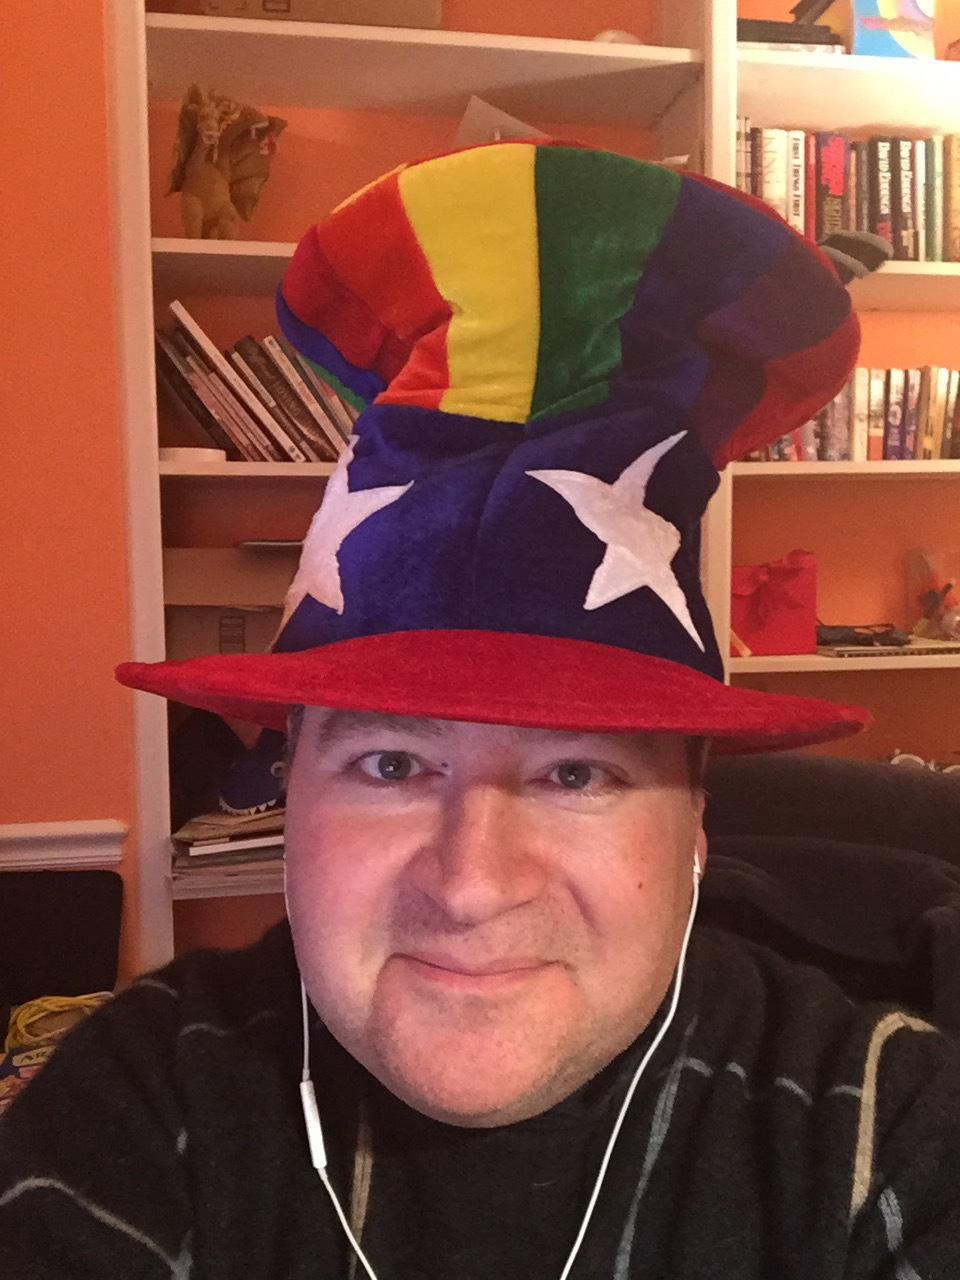 Proud podcasting hat